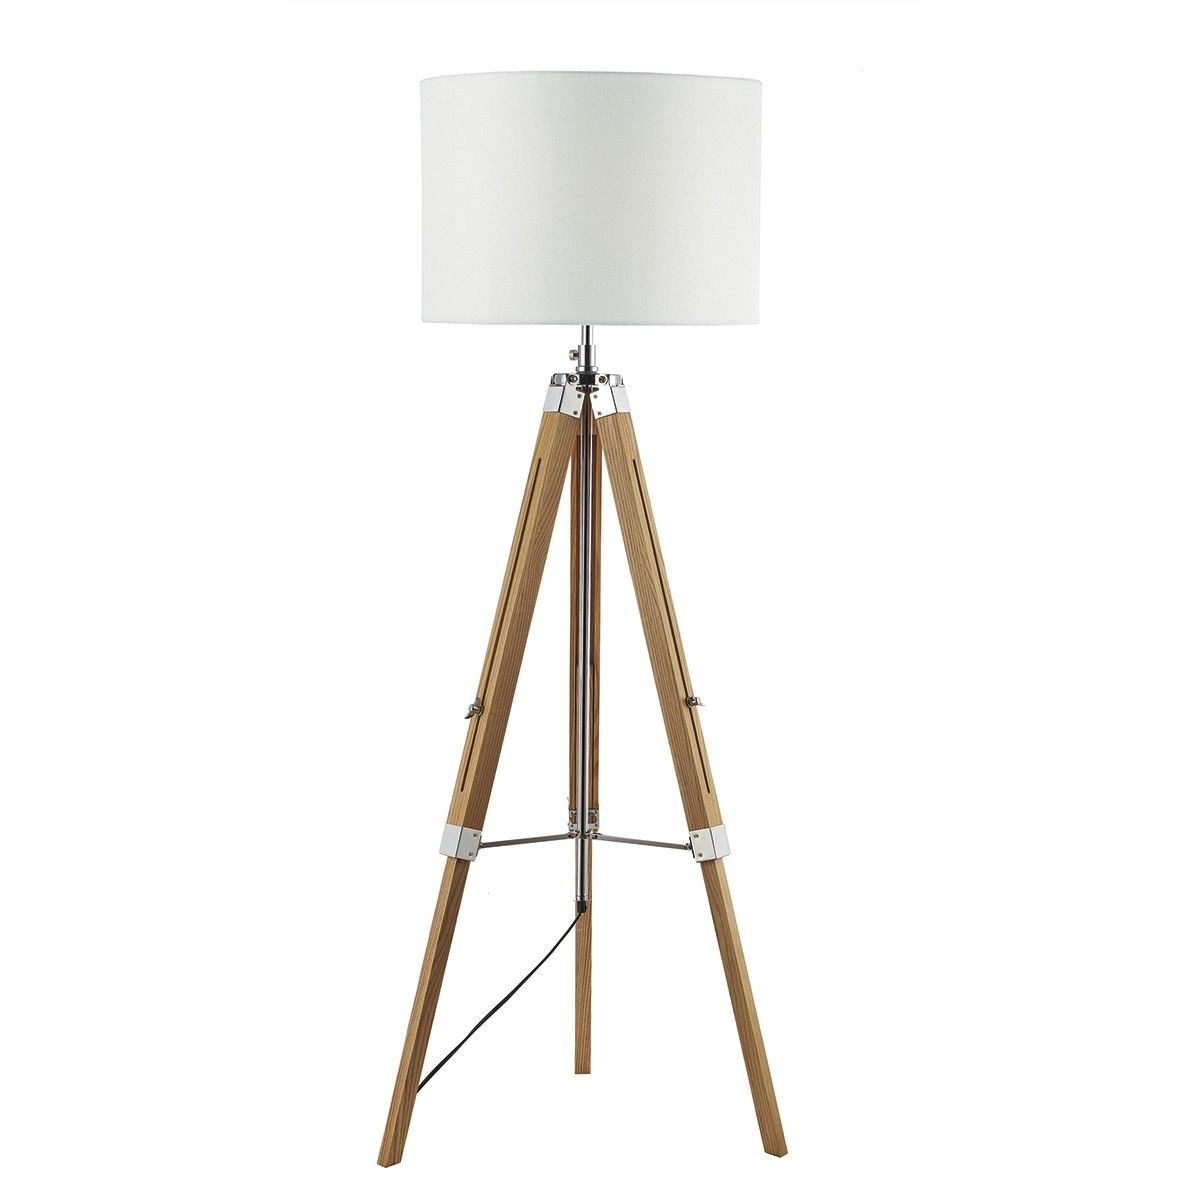 Easel tripod floor lamp base only bz103 backup pinterest easel tripod floor lamp base only mozeypictures Images